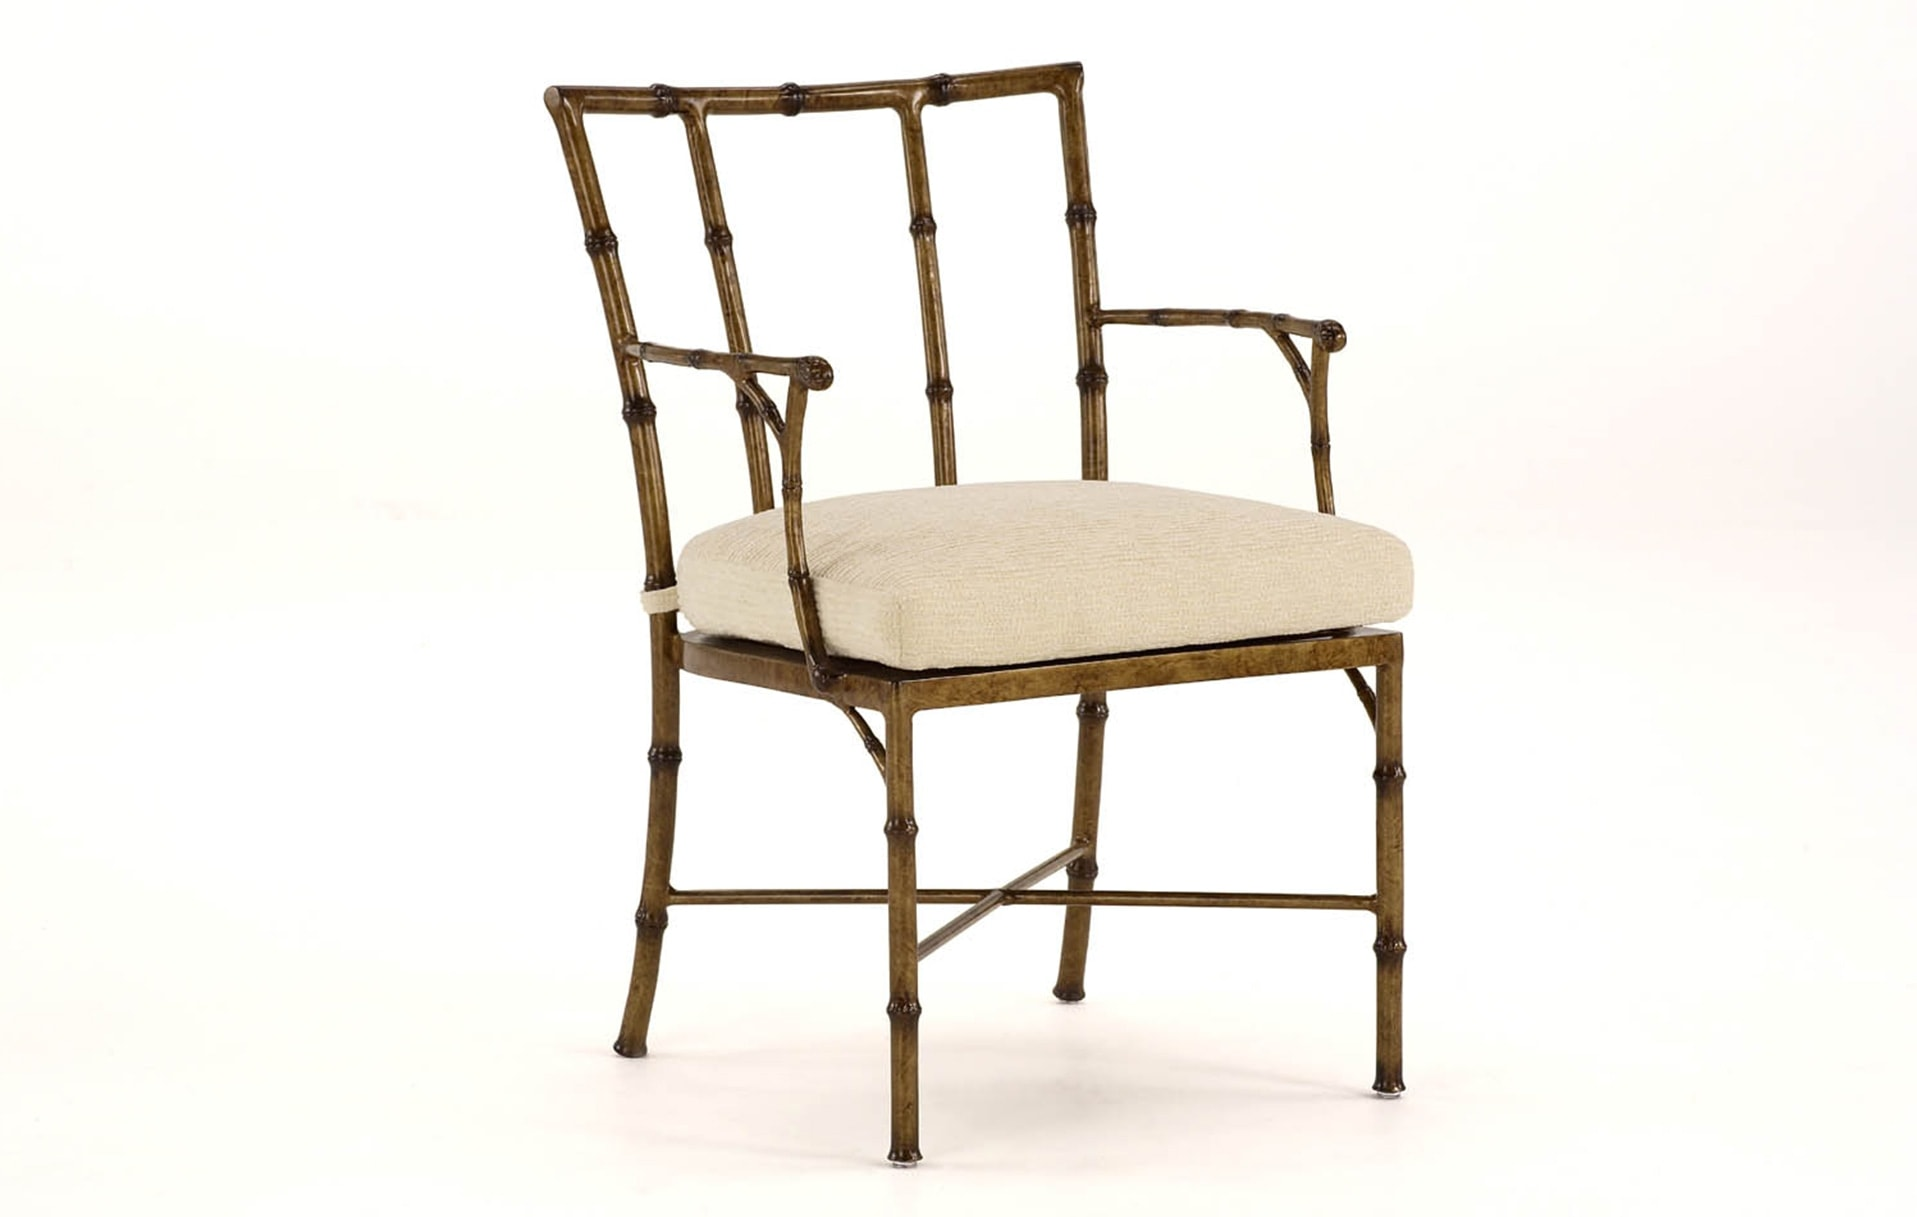 Lovely Bamboo Dining Chair - Tatiana Tafur PJ34